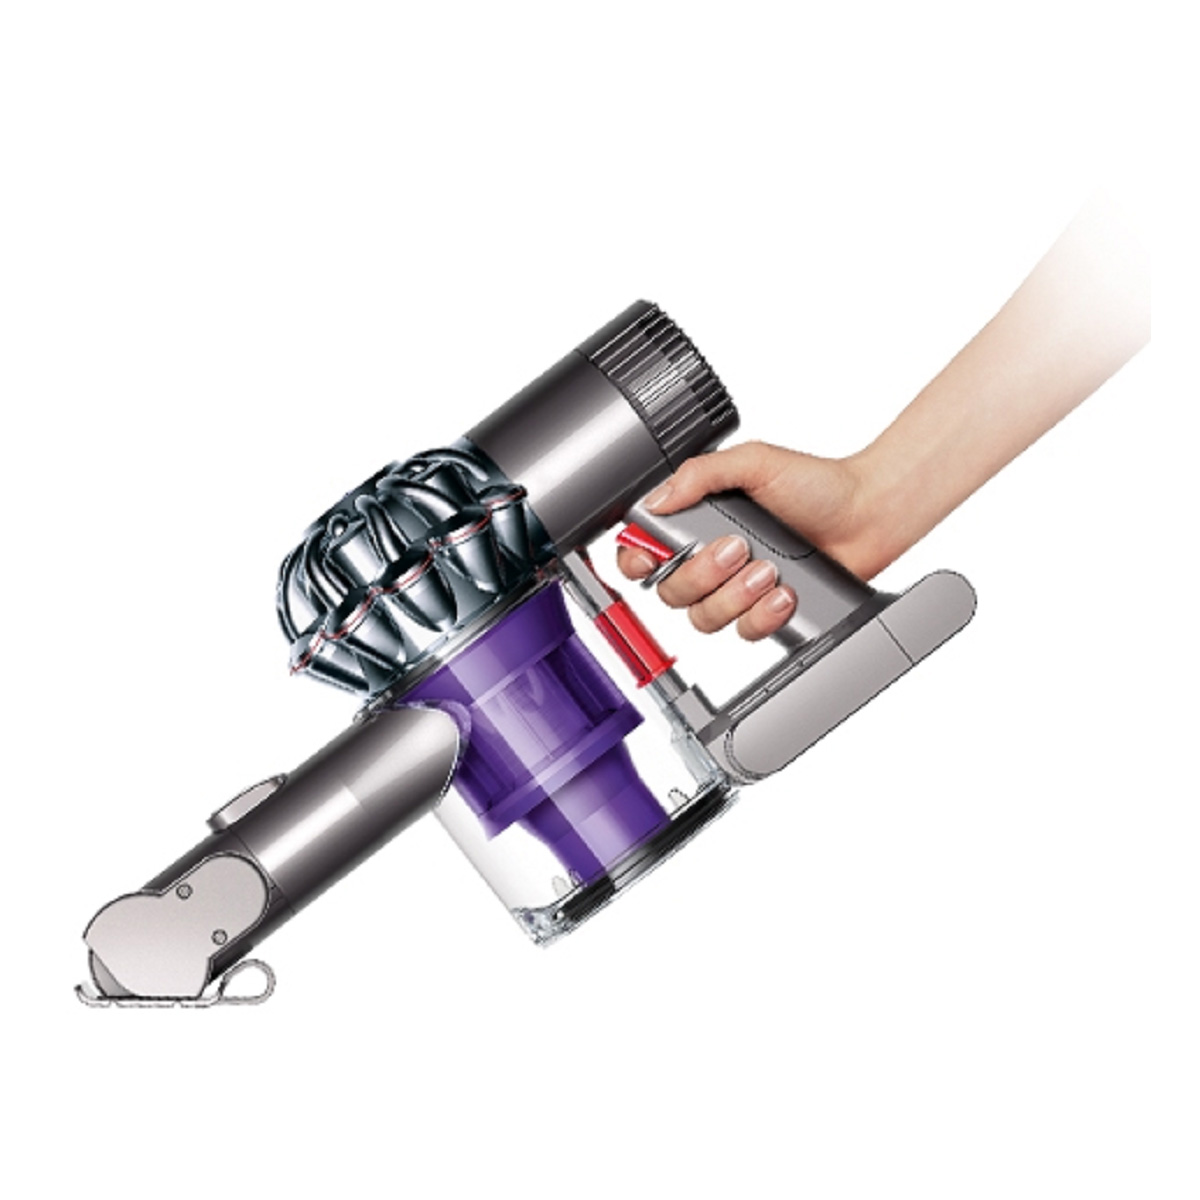 Dyson Dc58animal Handheld Vacuum Cleaner Home Clearance